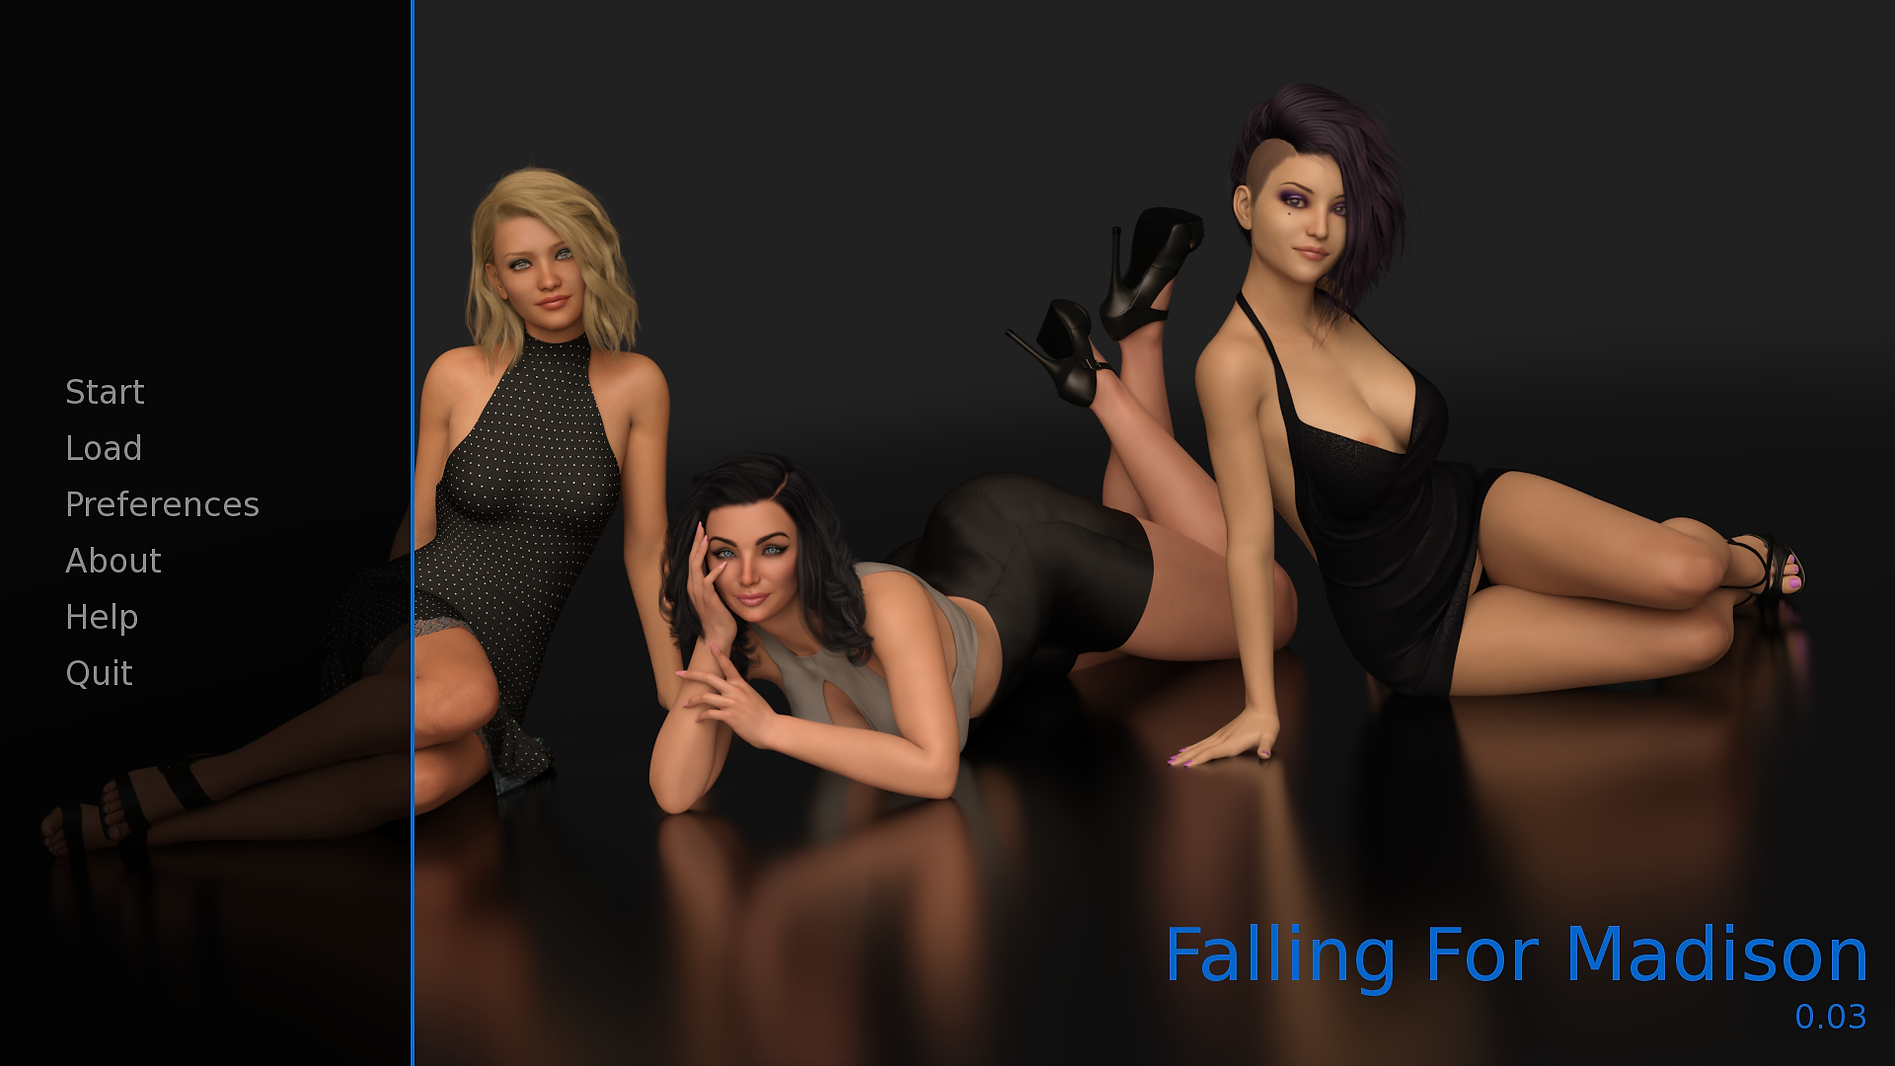 Falling For Madison Main - Haru's Harem.